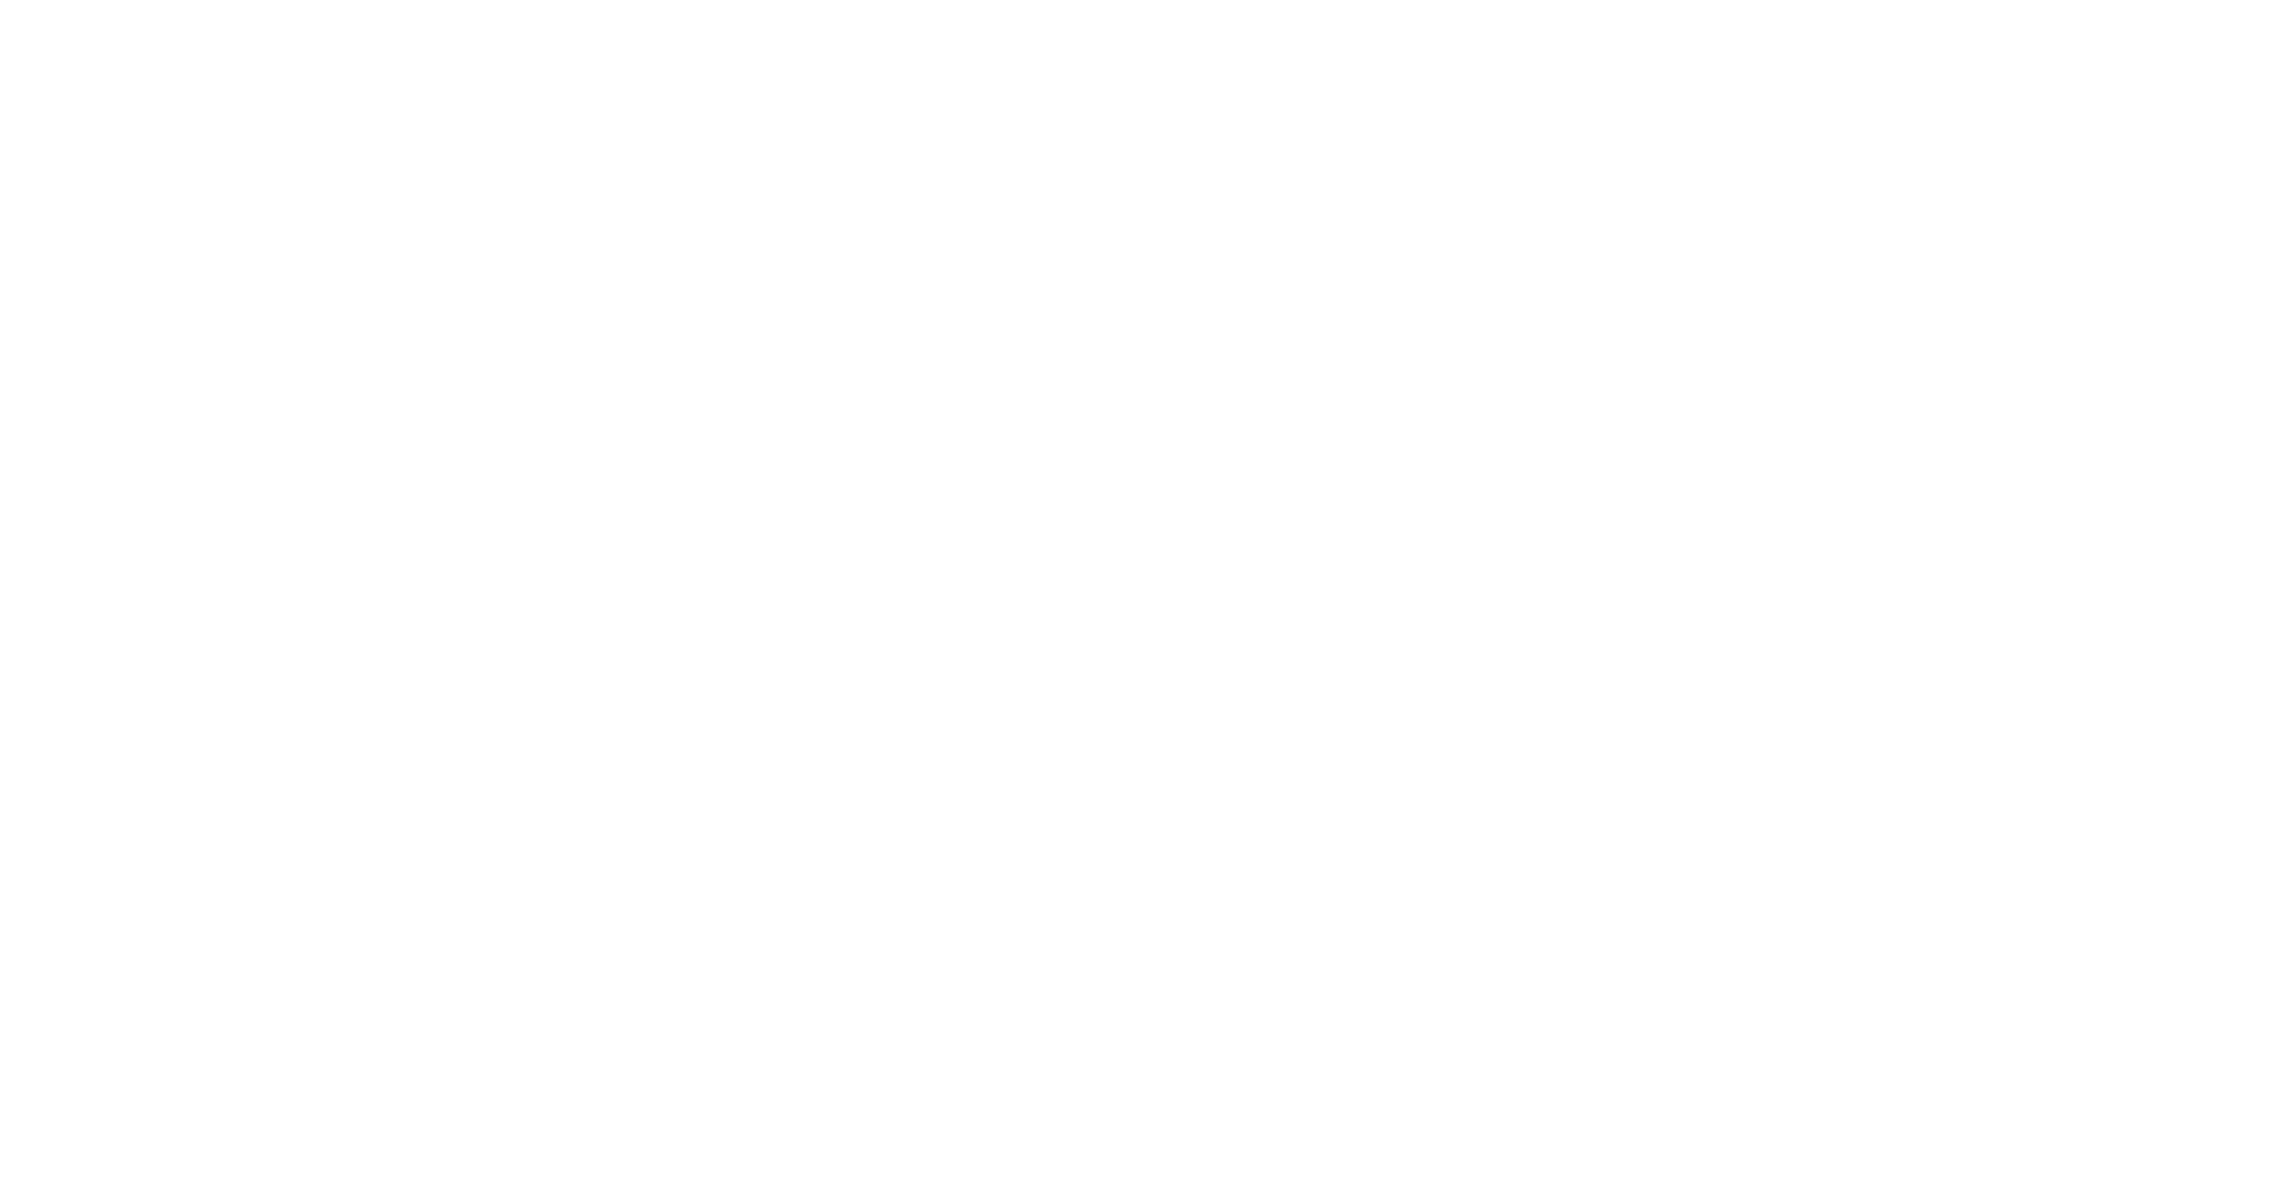 2100 Digital Logo